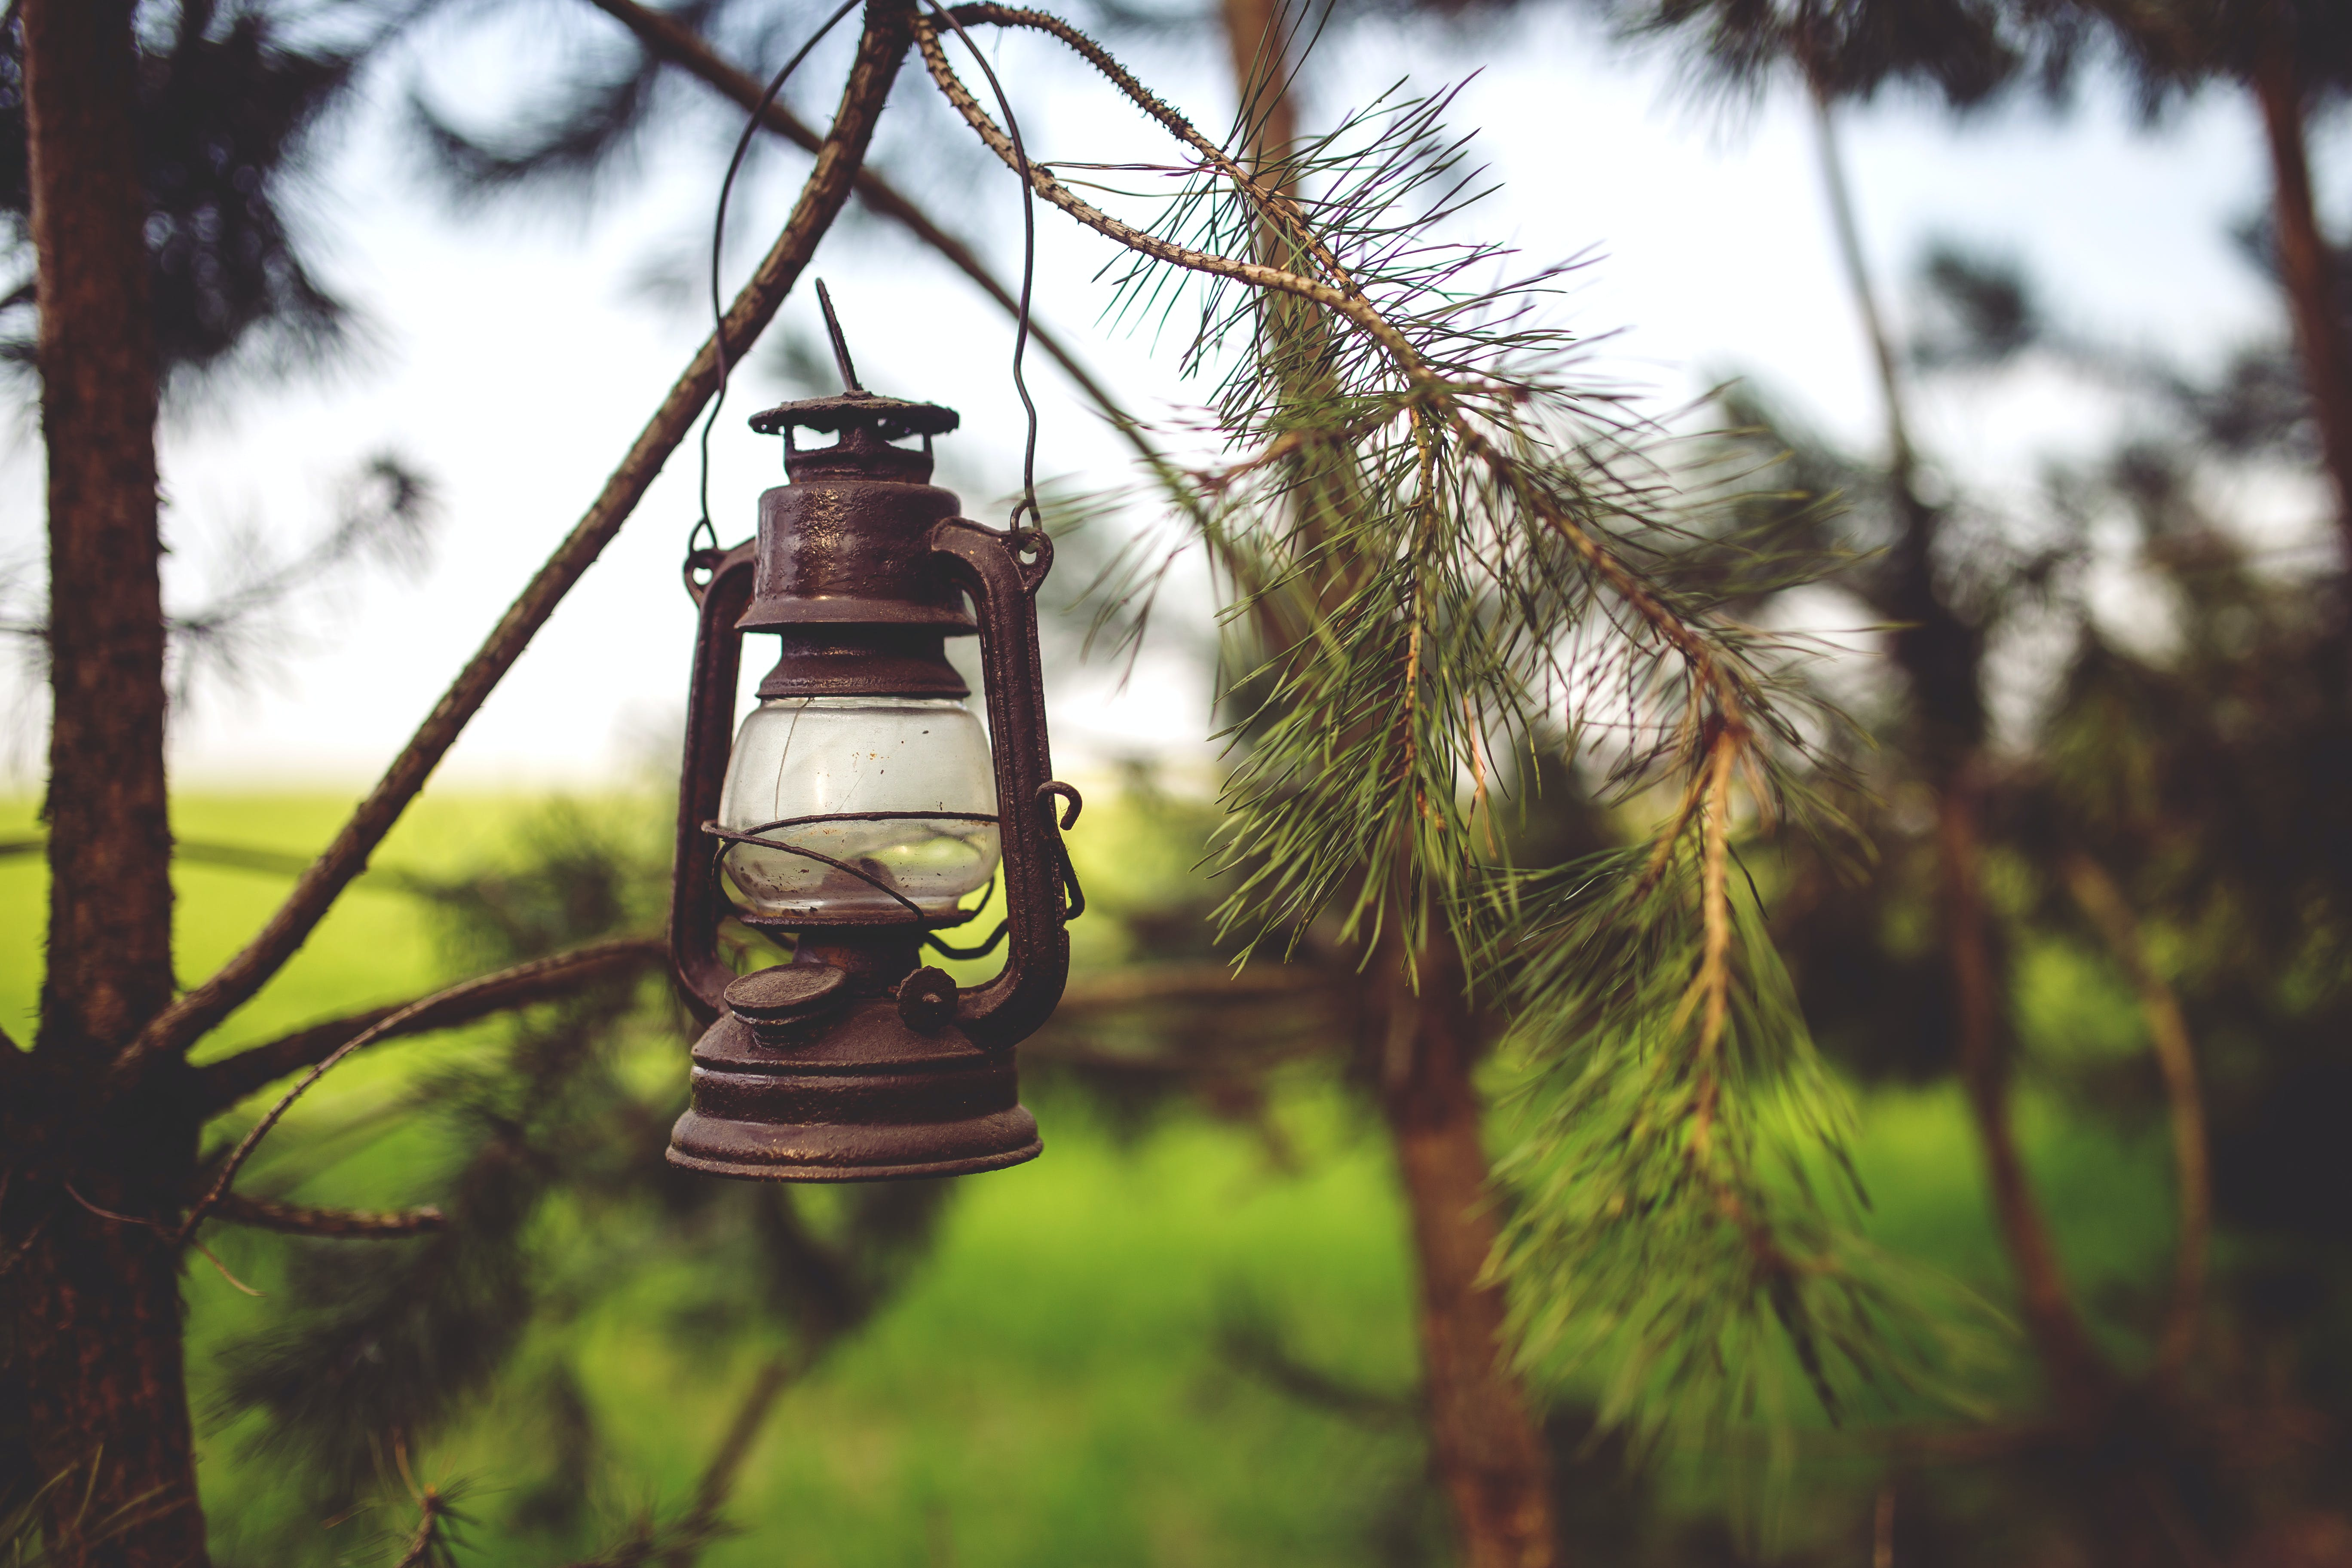 Kerosene lamp in the woods